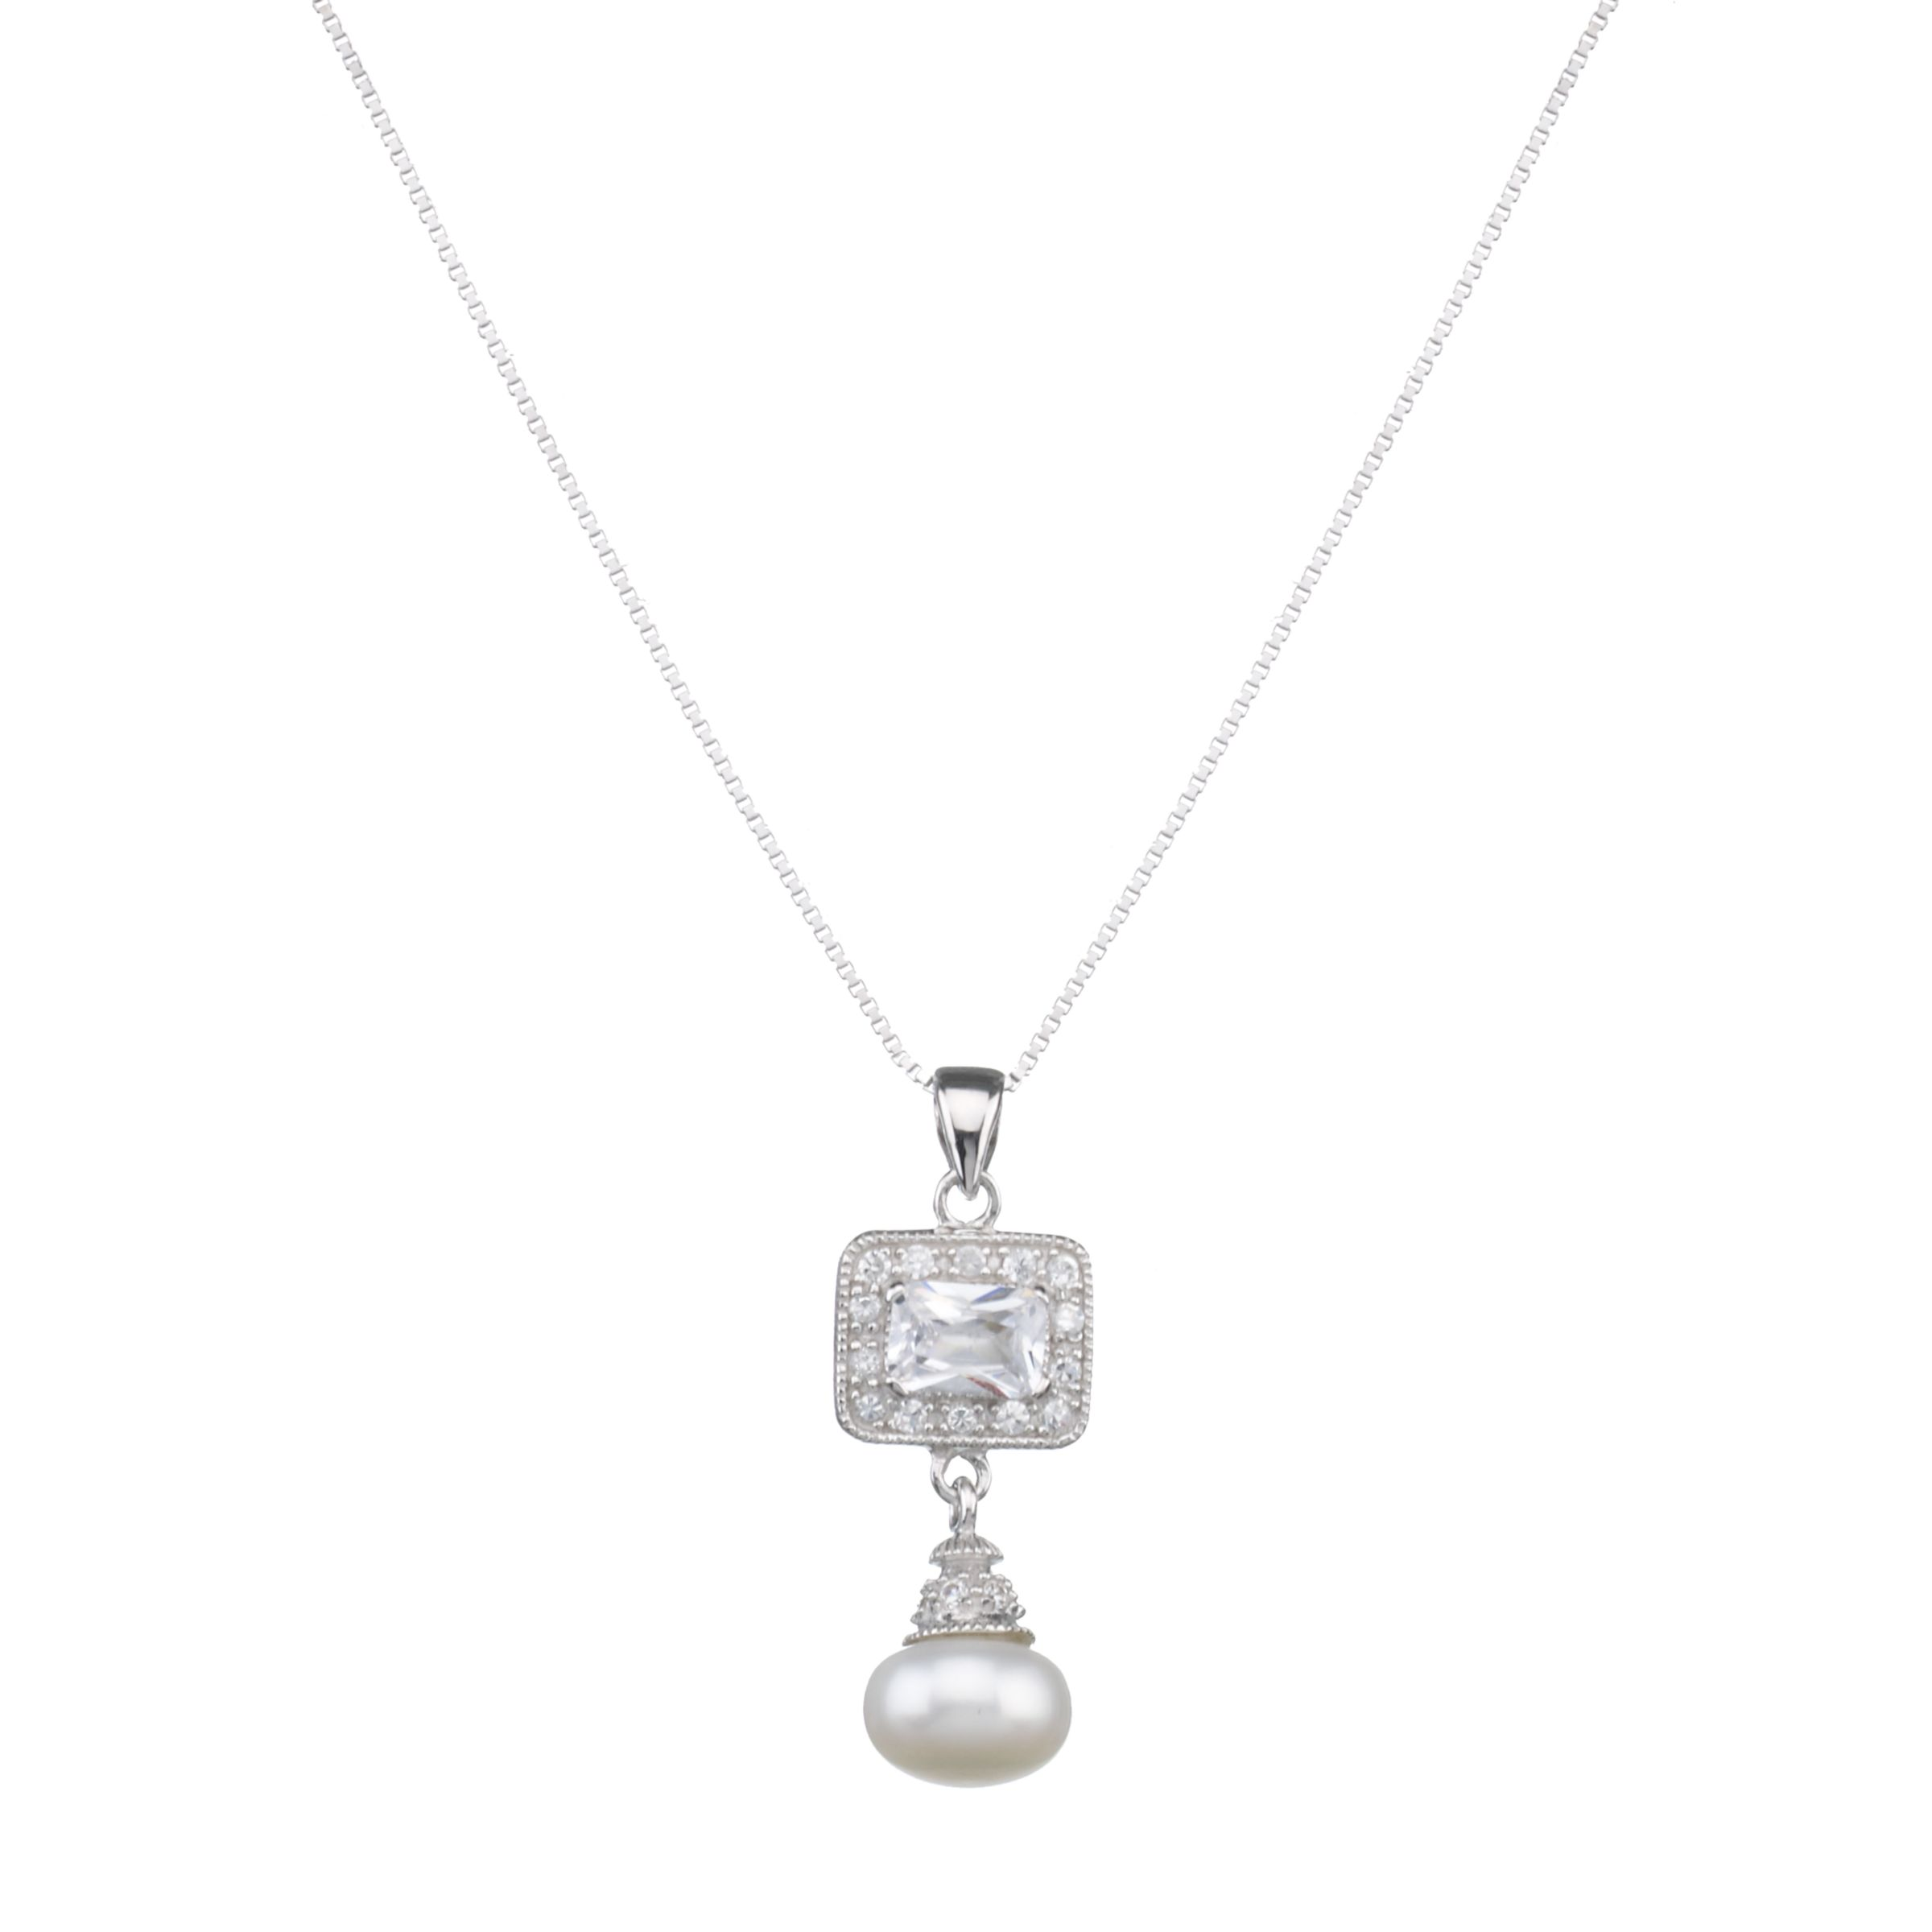 Lido Pearls Square Cubic Zirconia Pendant Necklace with Pearl Drop